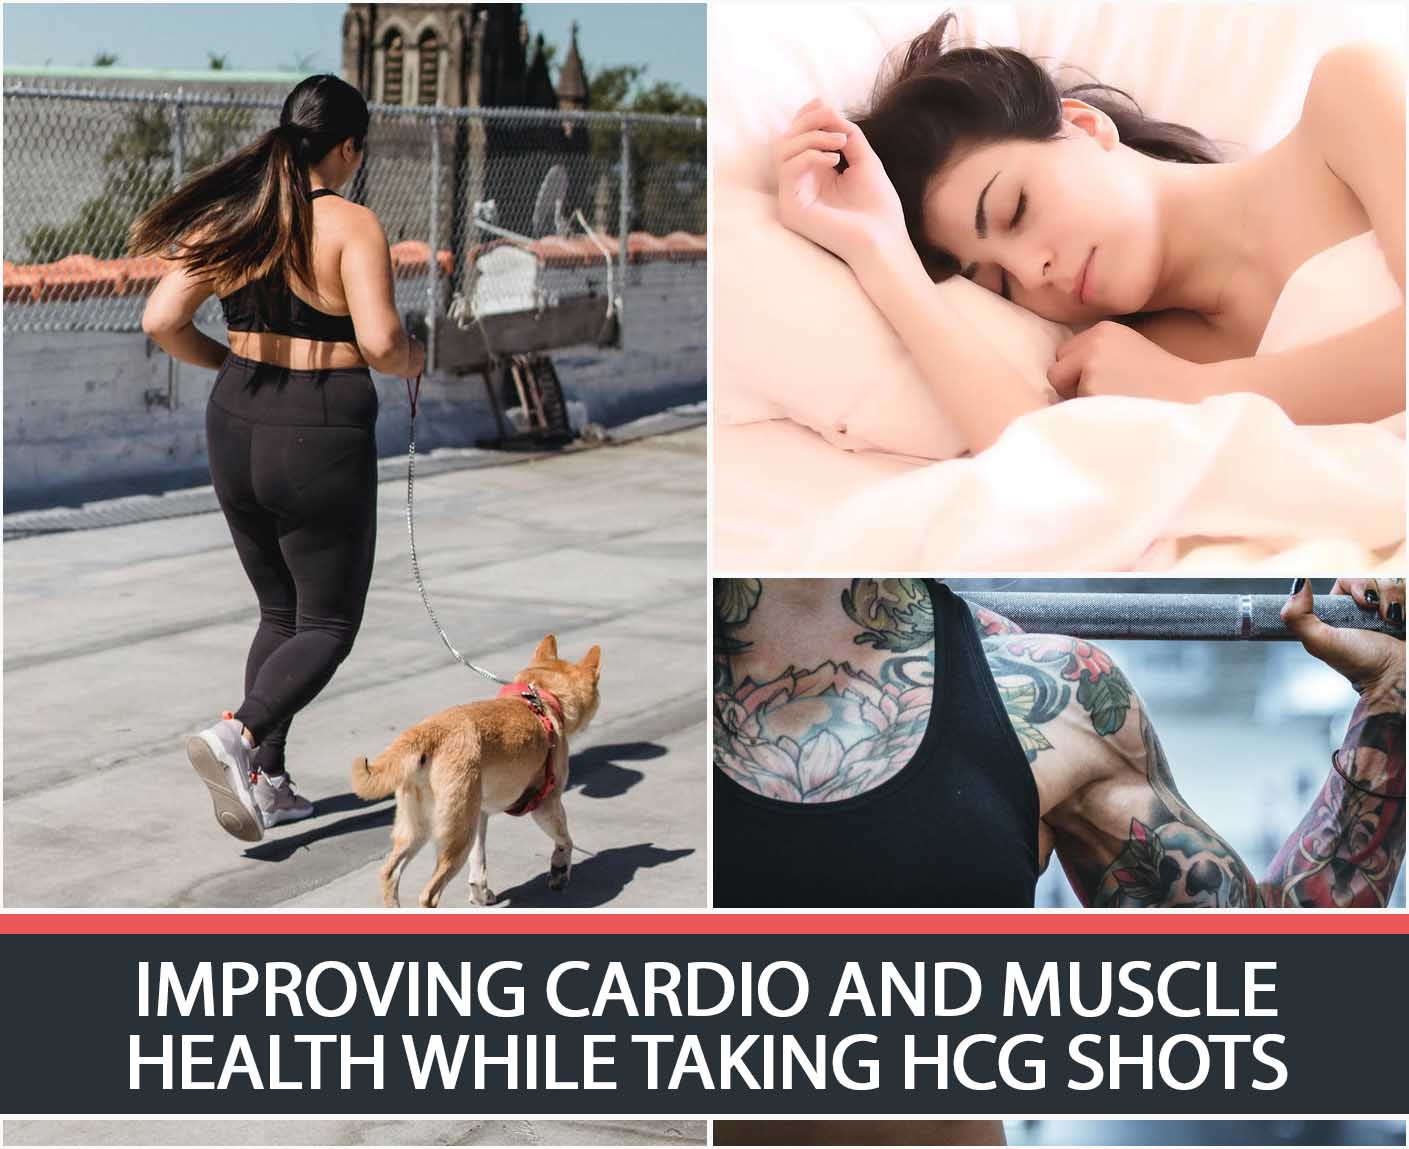 IMPROVING CARDIO AND MUSCLE HEALTH WHILE TAKING HCG SHOTS